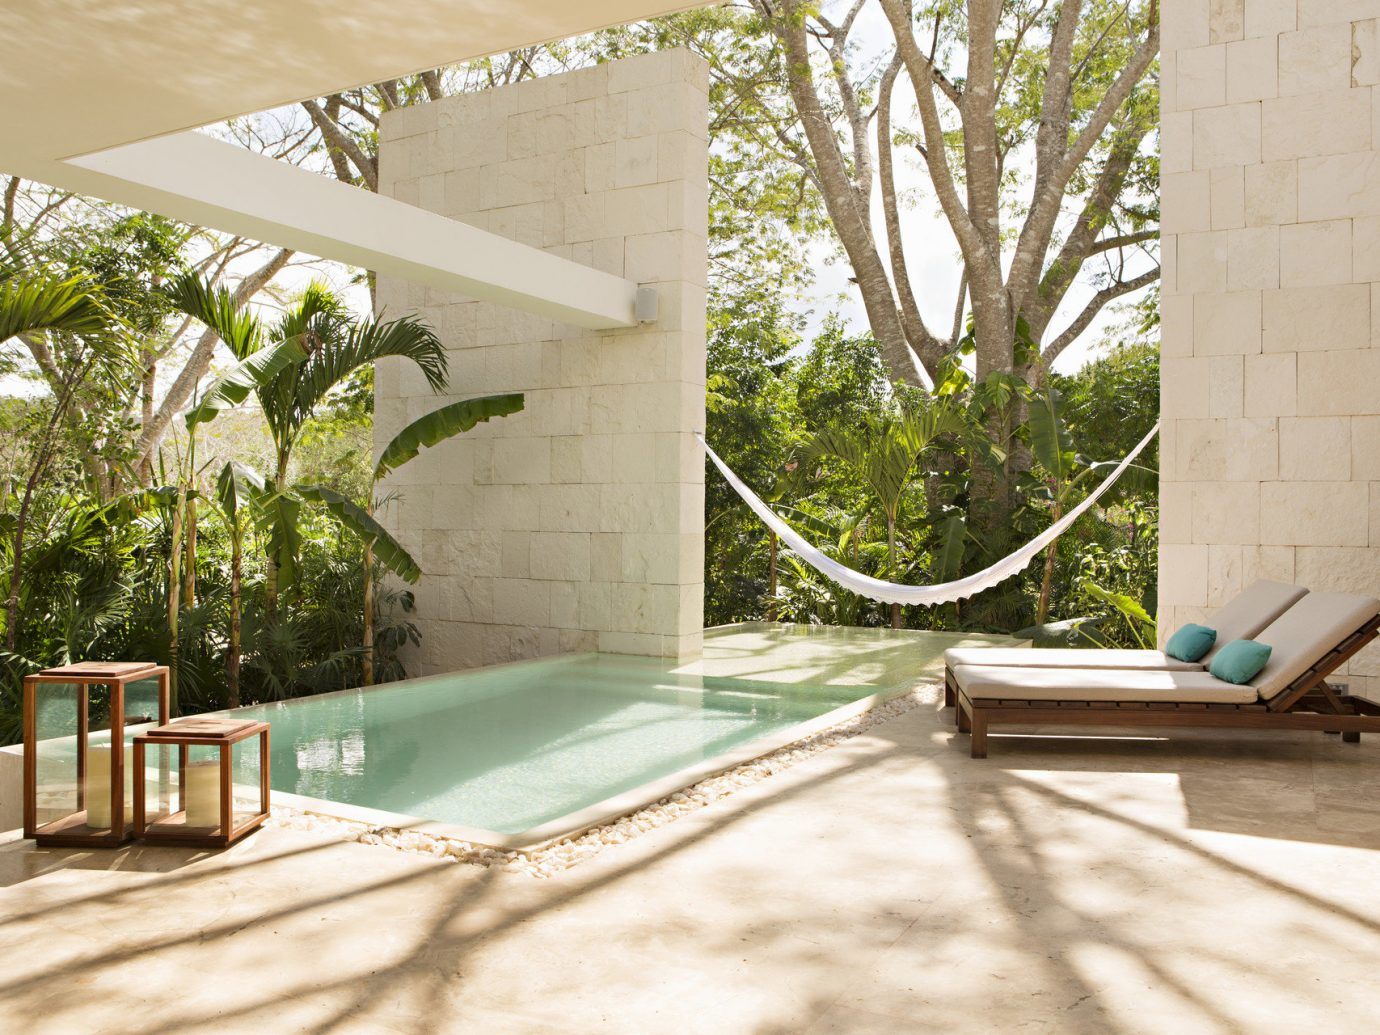 calm Greenery hammock Hotels lounge chairs Luxury open-air outdoor pool Patio Pool private private pool remote serene sophisticated Terrace trees Tropical tree leisure Architecture house Courtyard estate swimming pool home backyard interior design Villa Garden stone furniture